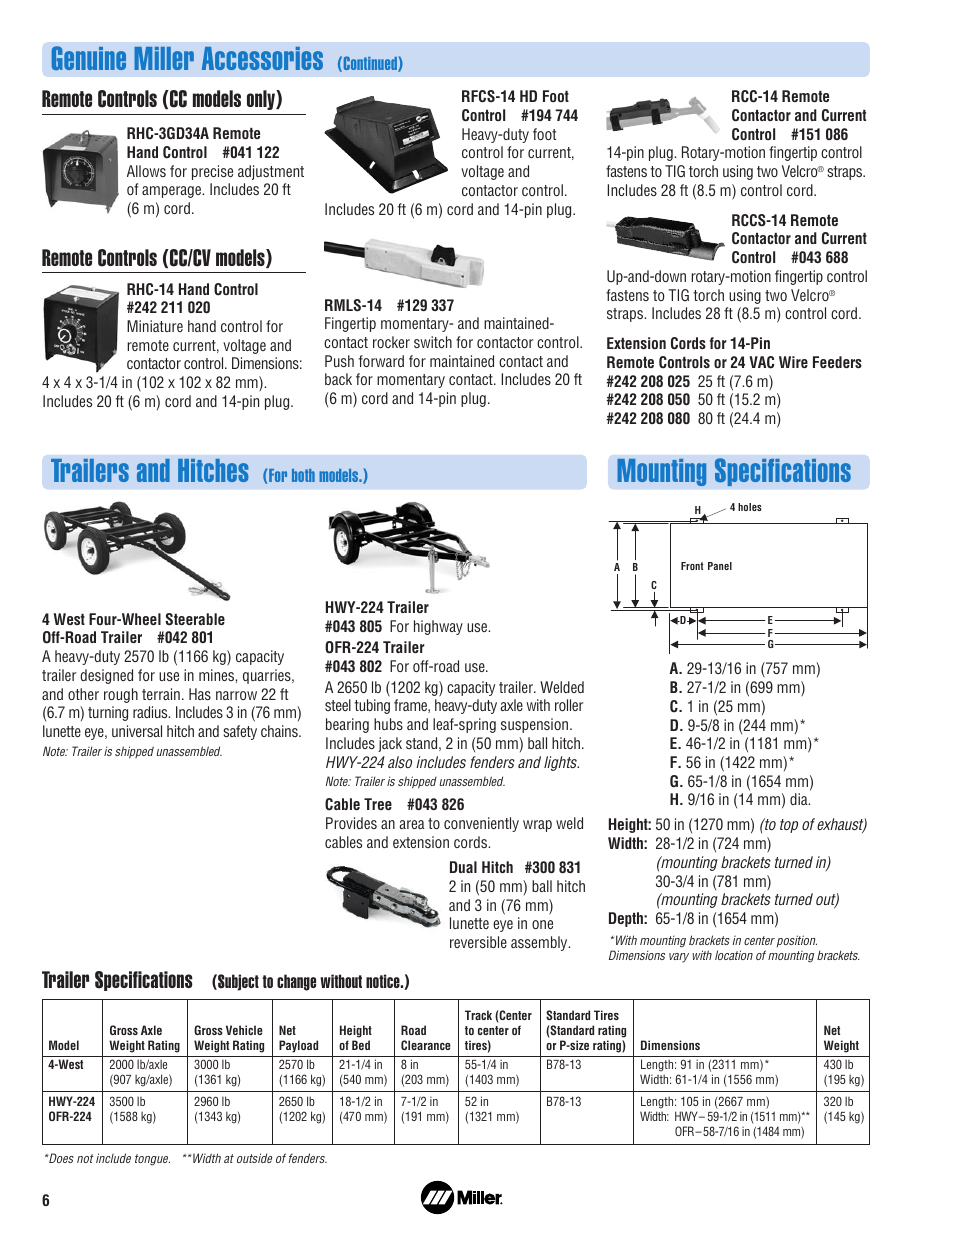 Trailers And Hitches >> Genuine Miller Accessories Trailers And Hitches Mounting